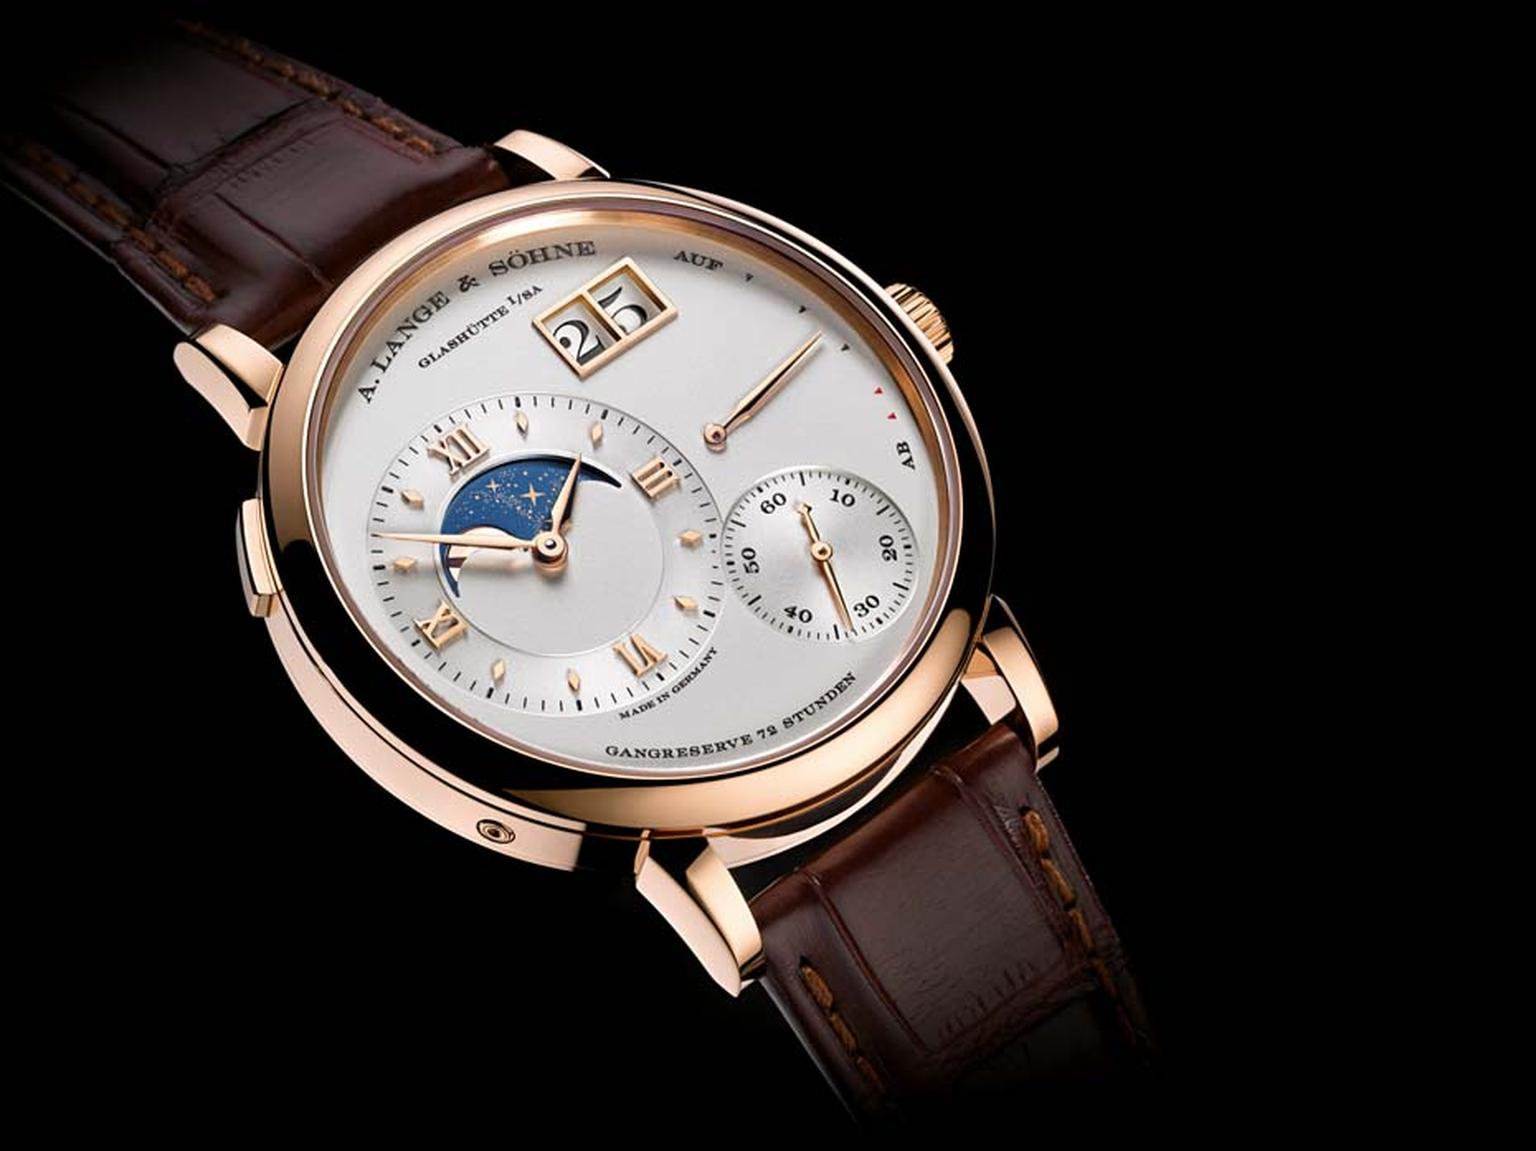 Lange & Sohne's Grande Lange 1 Moon Phase watch is designed to remain accurate for 122.6 years